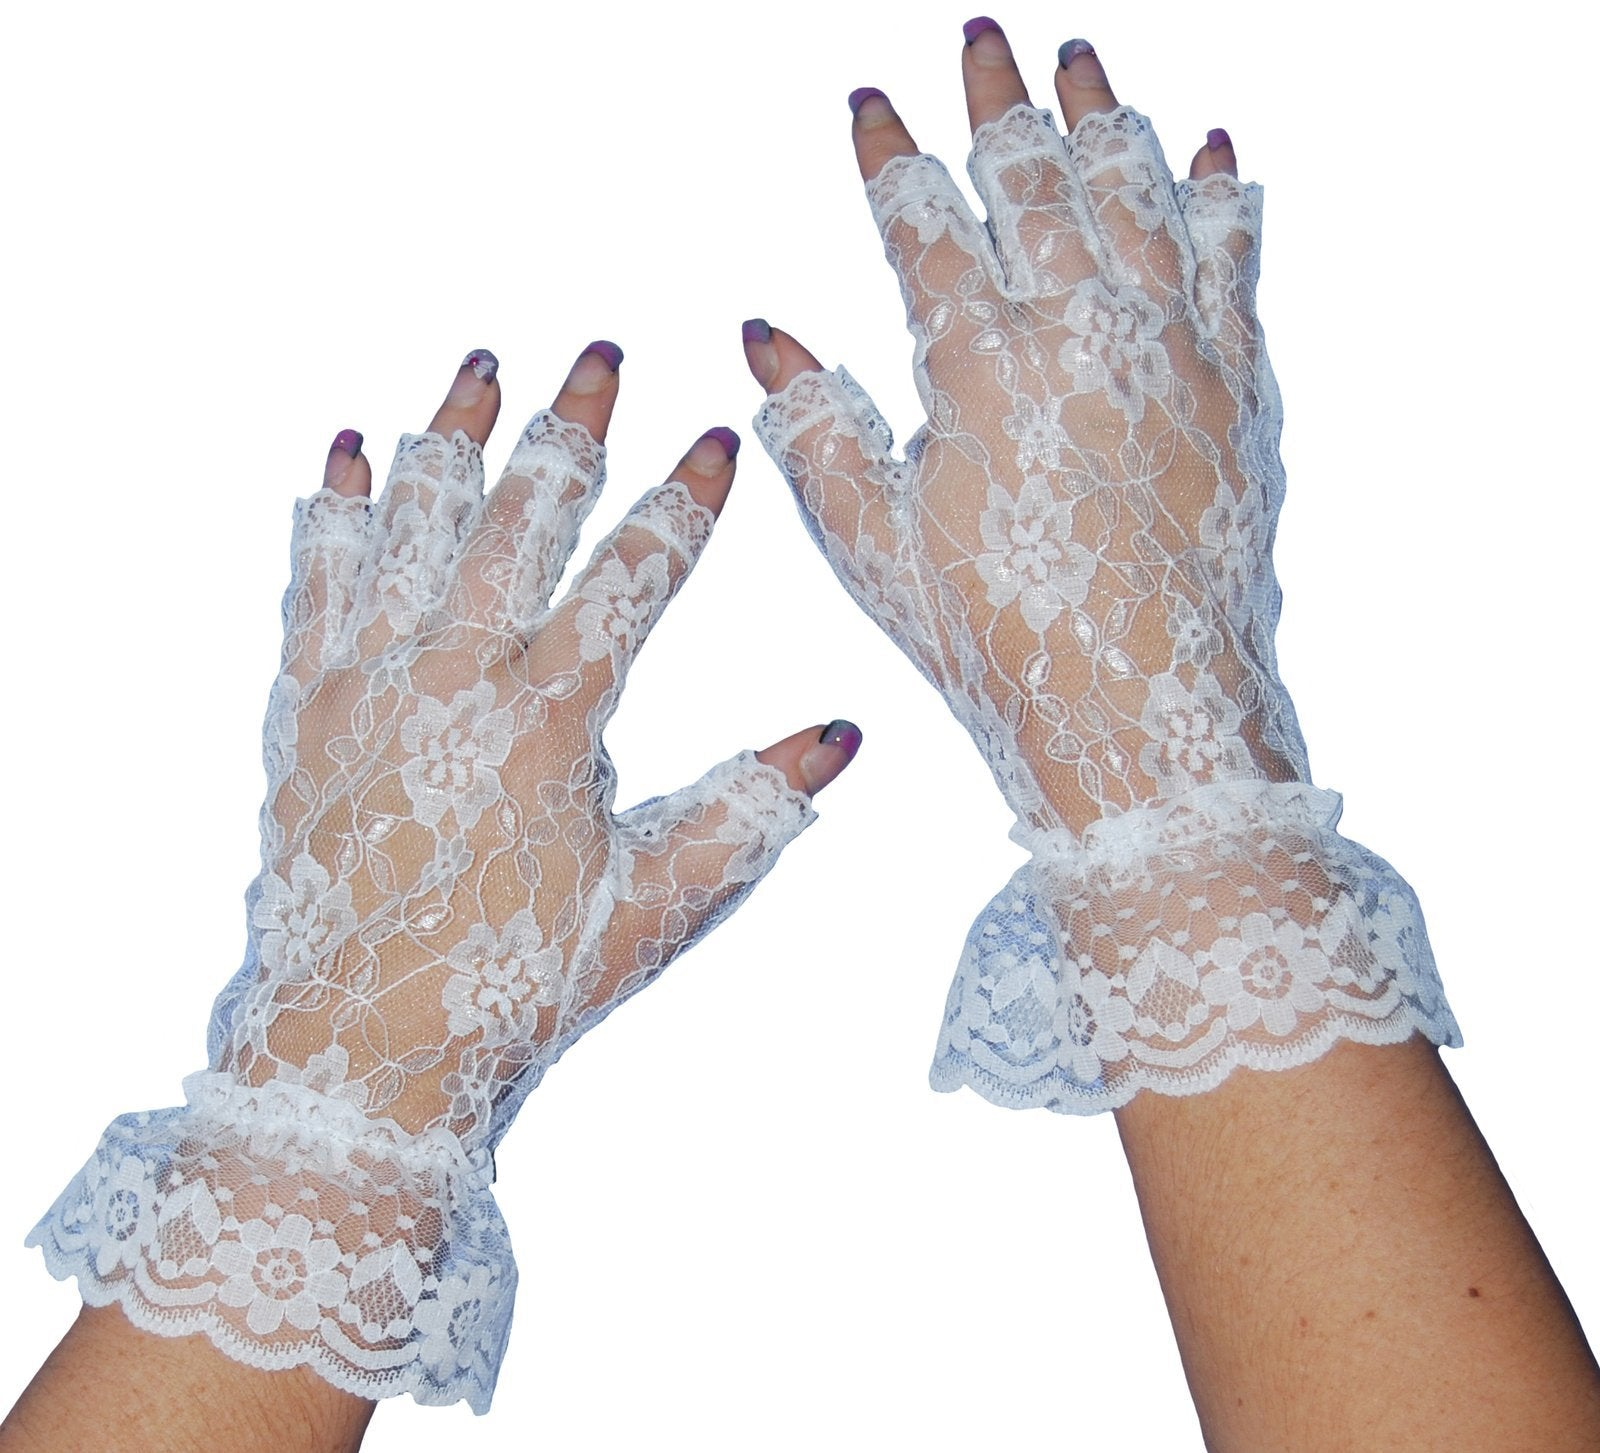 Gloves White Lace Fingerless - The Costume Company | Fancy Dress Costumes Hire and Purchase Brisbane and Australia